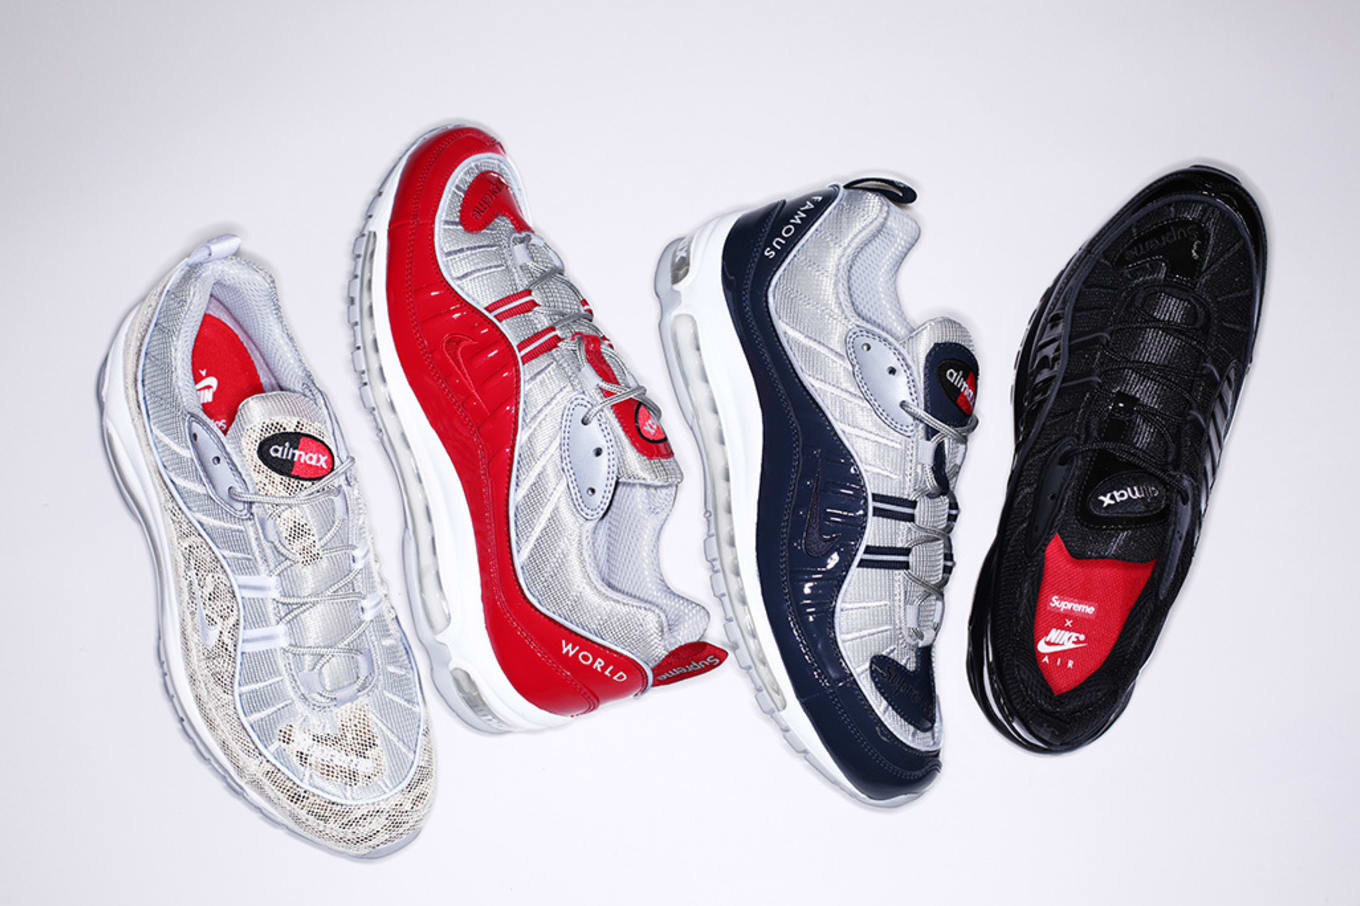 Nike Officially Introduces The Supreme x NikeLab Air Max 98